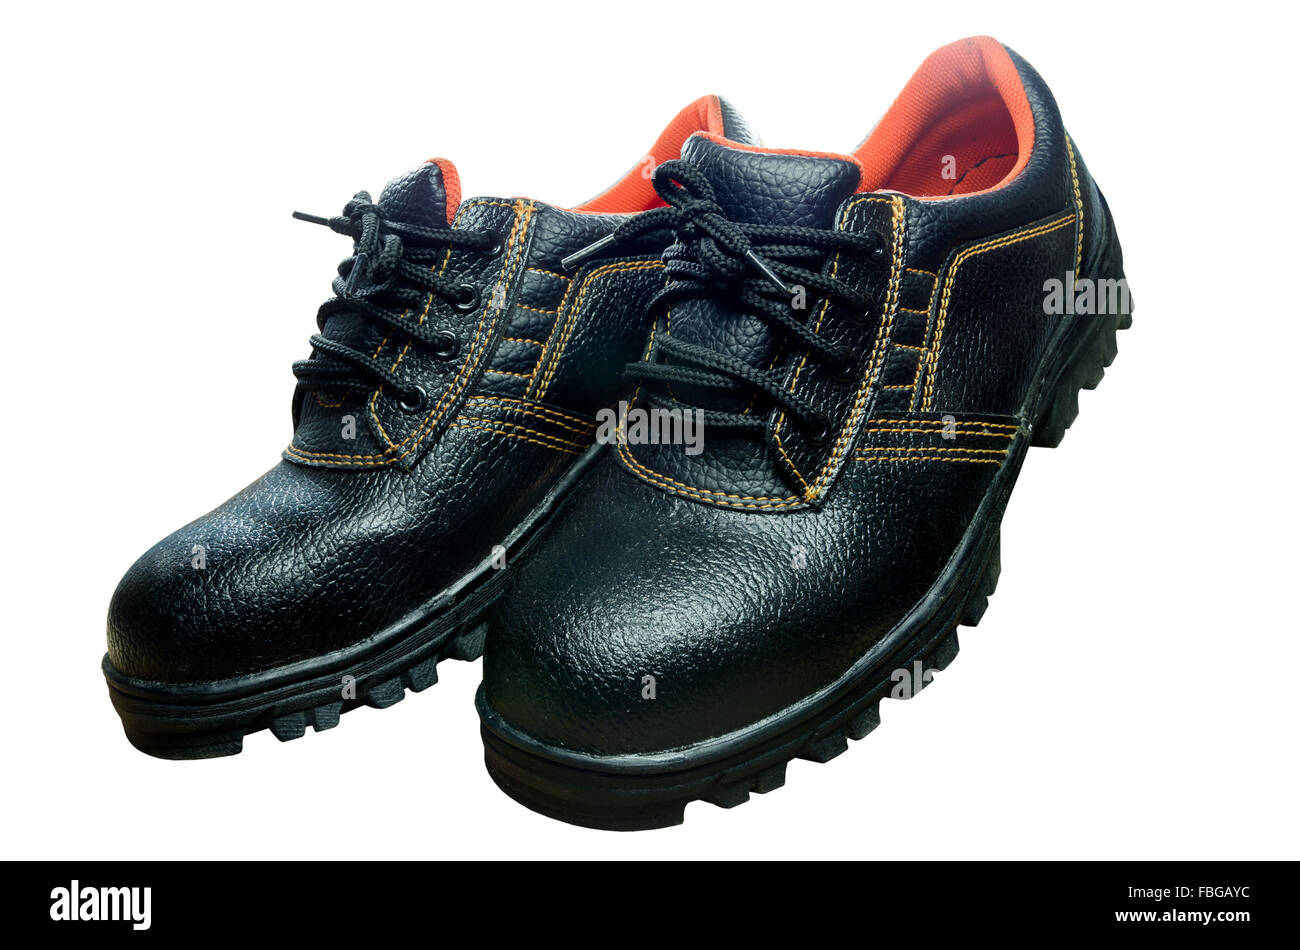 Black steel toe safety of steel cap work boots on white blackground. - Stock Image